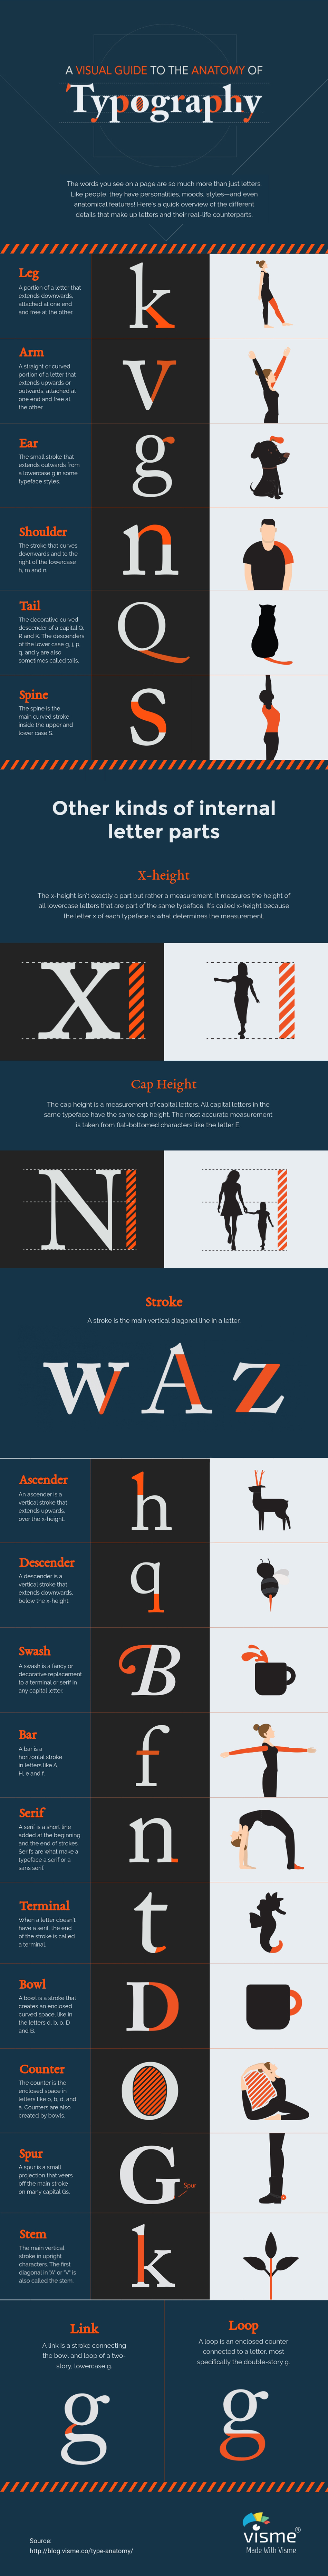 Type Anatomy: A Visual Guide to the Parts of Letters